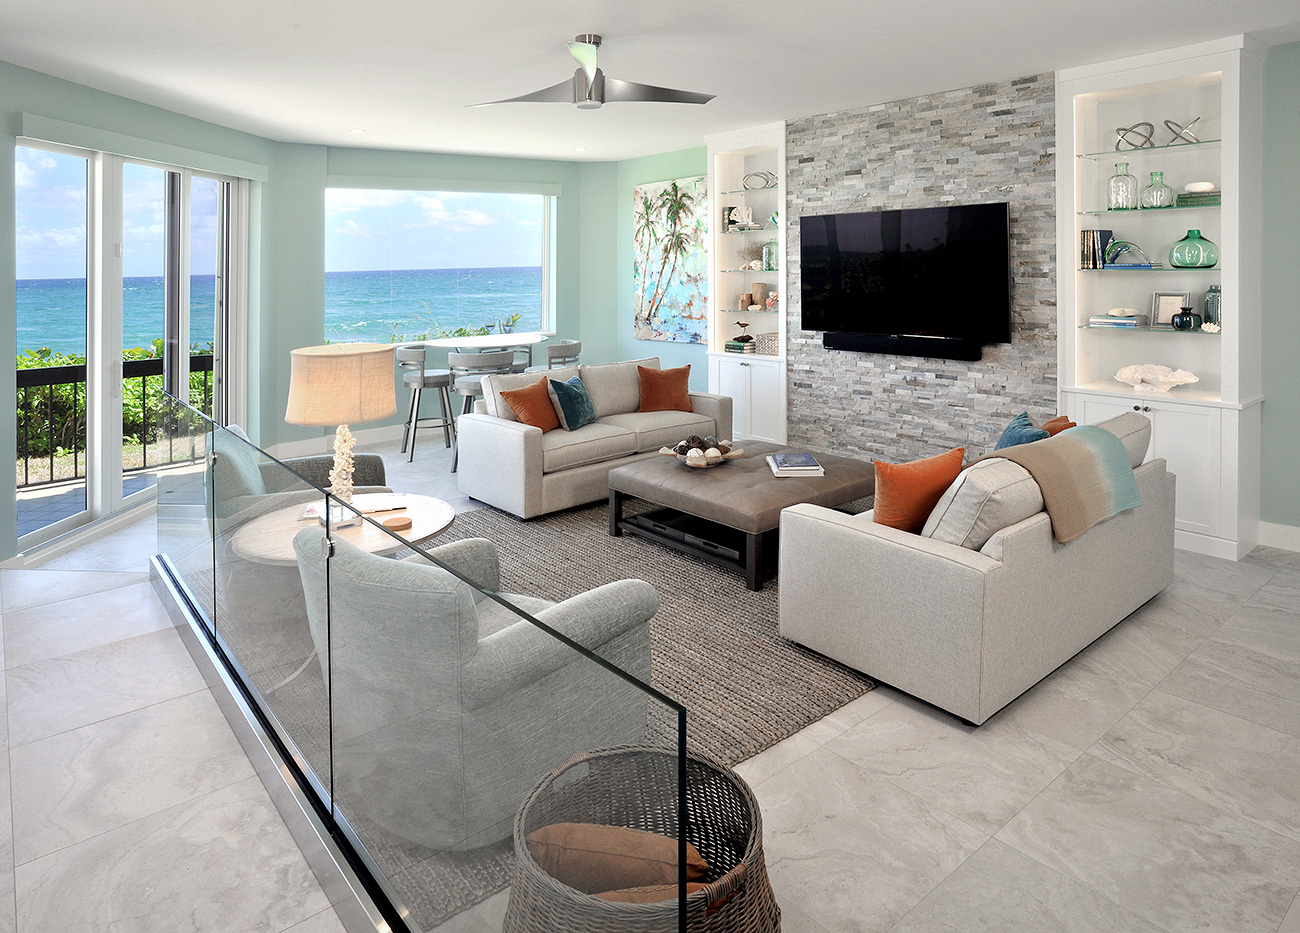 Living room in a beach house